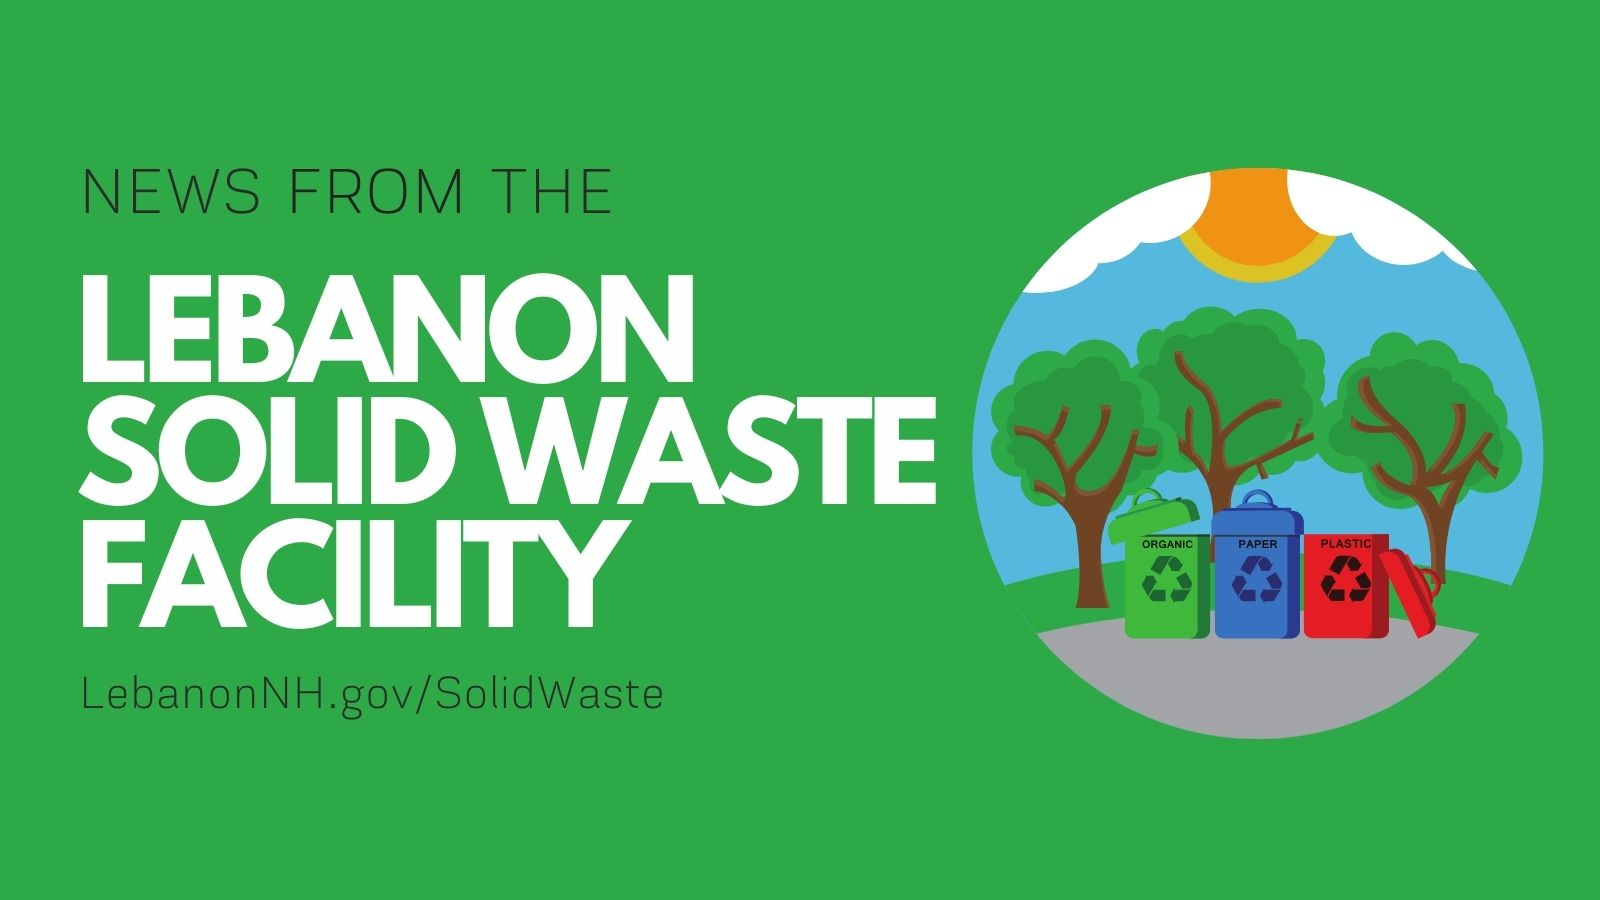 News from the Lebanon Solid Waste Facility with earth and recycle bins clipart